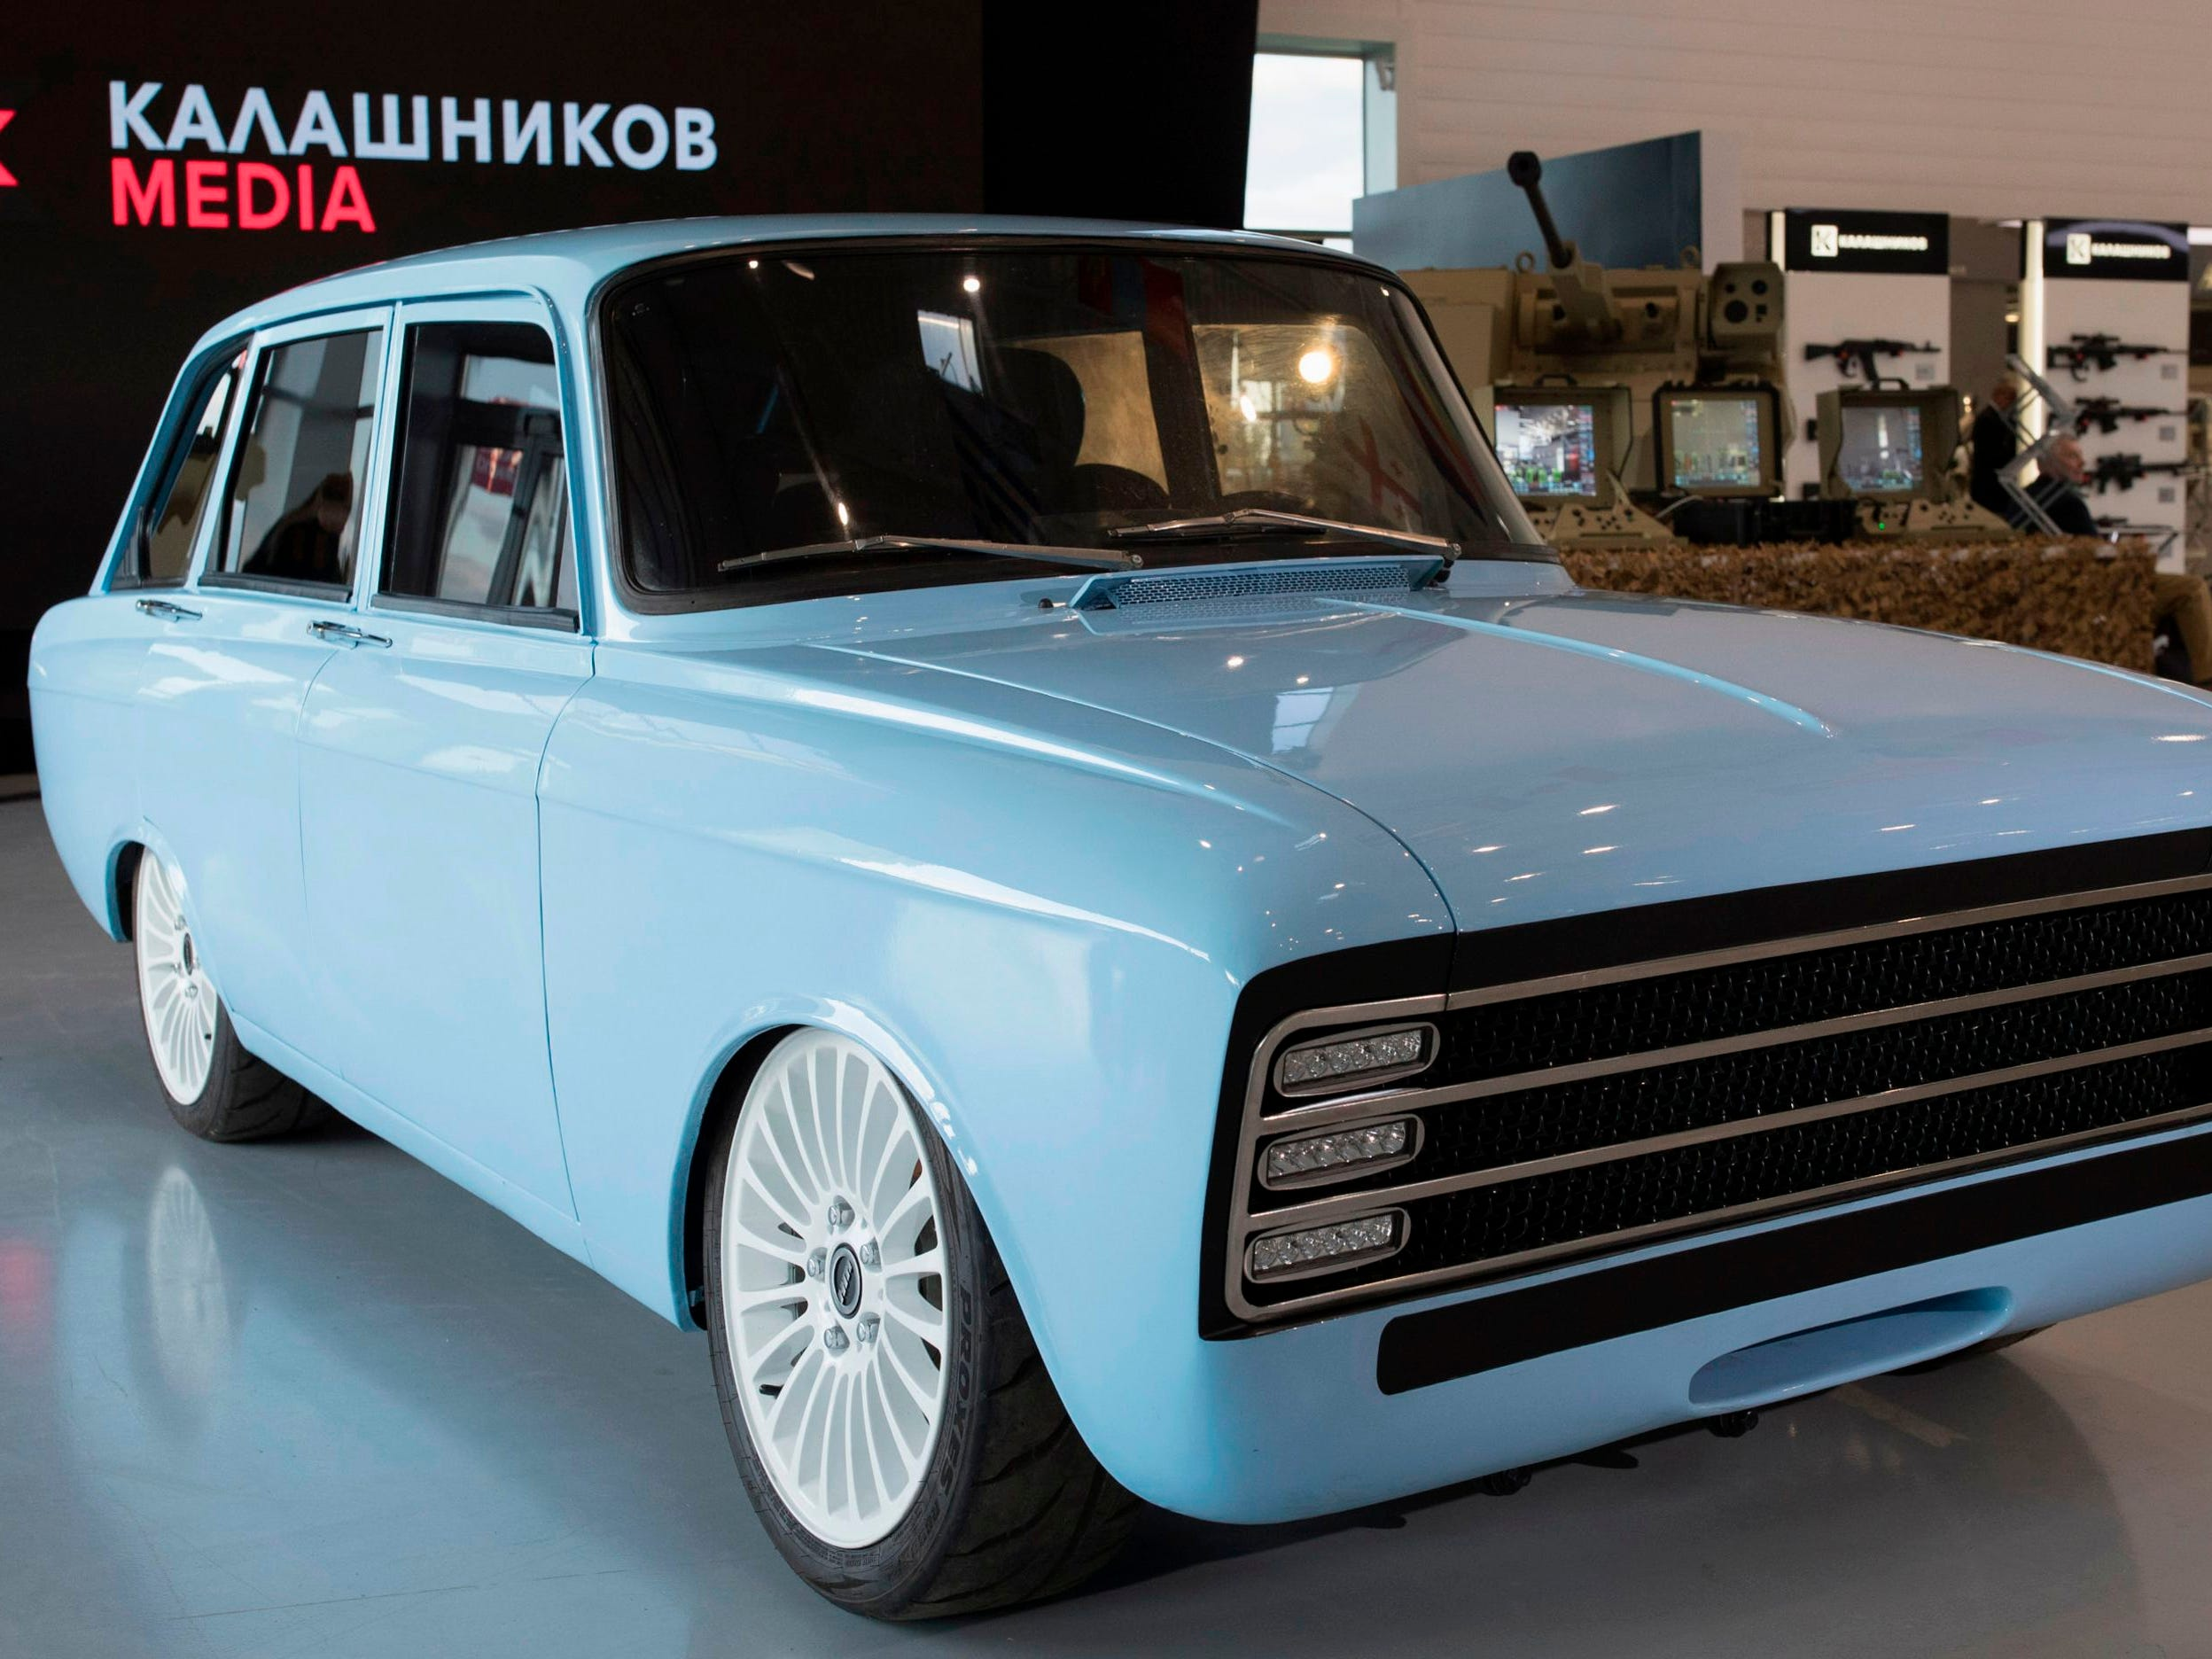 A retro-looking pale blue prototype electric car, the CV-1,  produced by Russian arms maker Kalashnikov, in Moscow on Aug. 22, 2018.